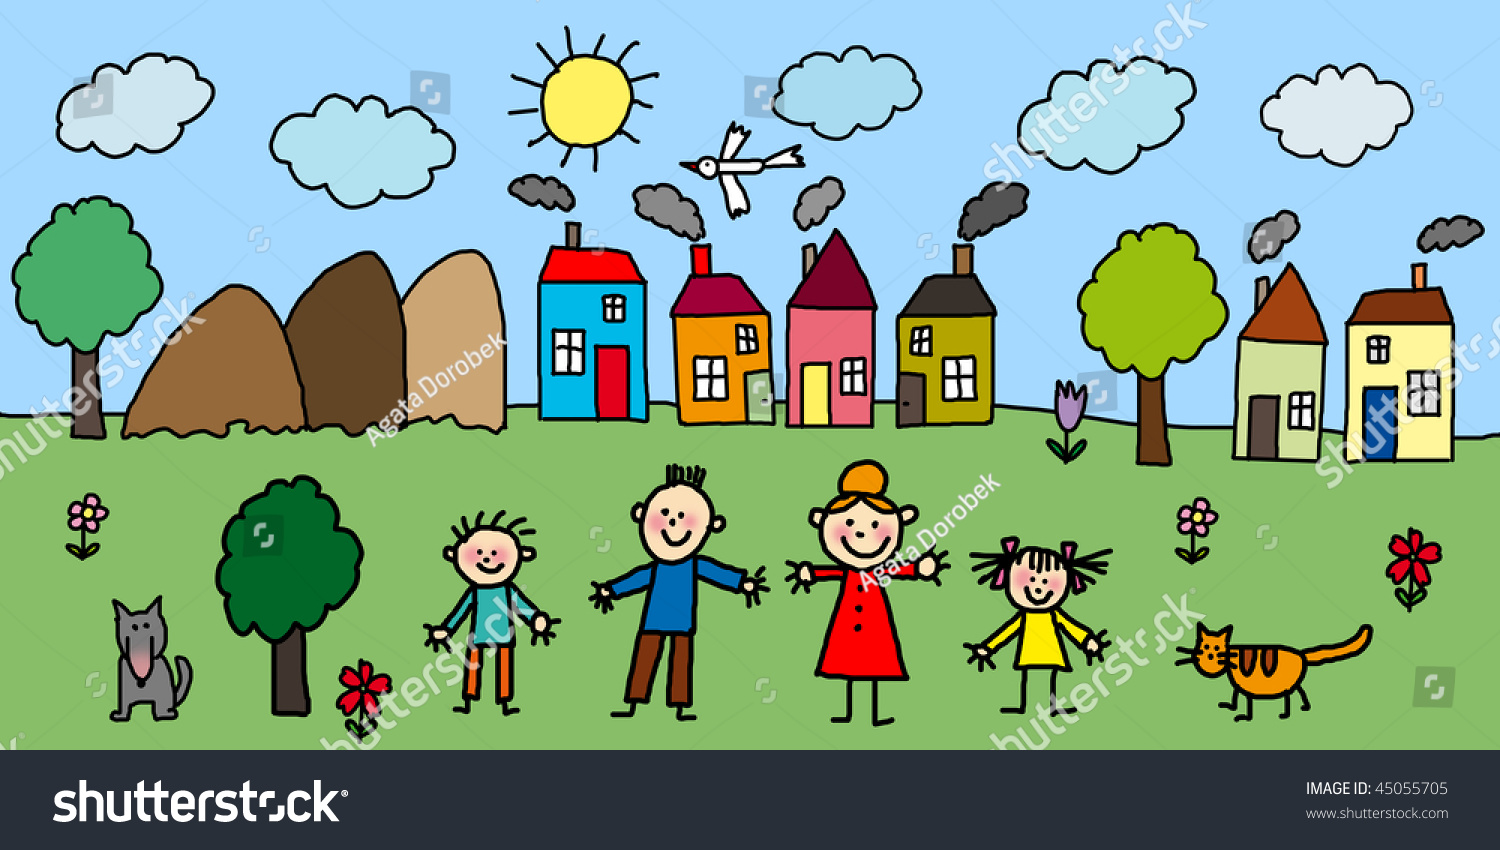 Family City Ecology Draw Kids Style Stock Illustration 45055705 ...